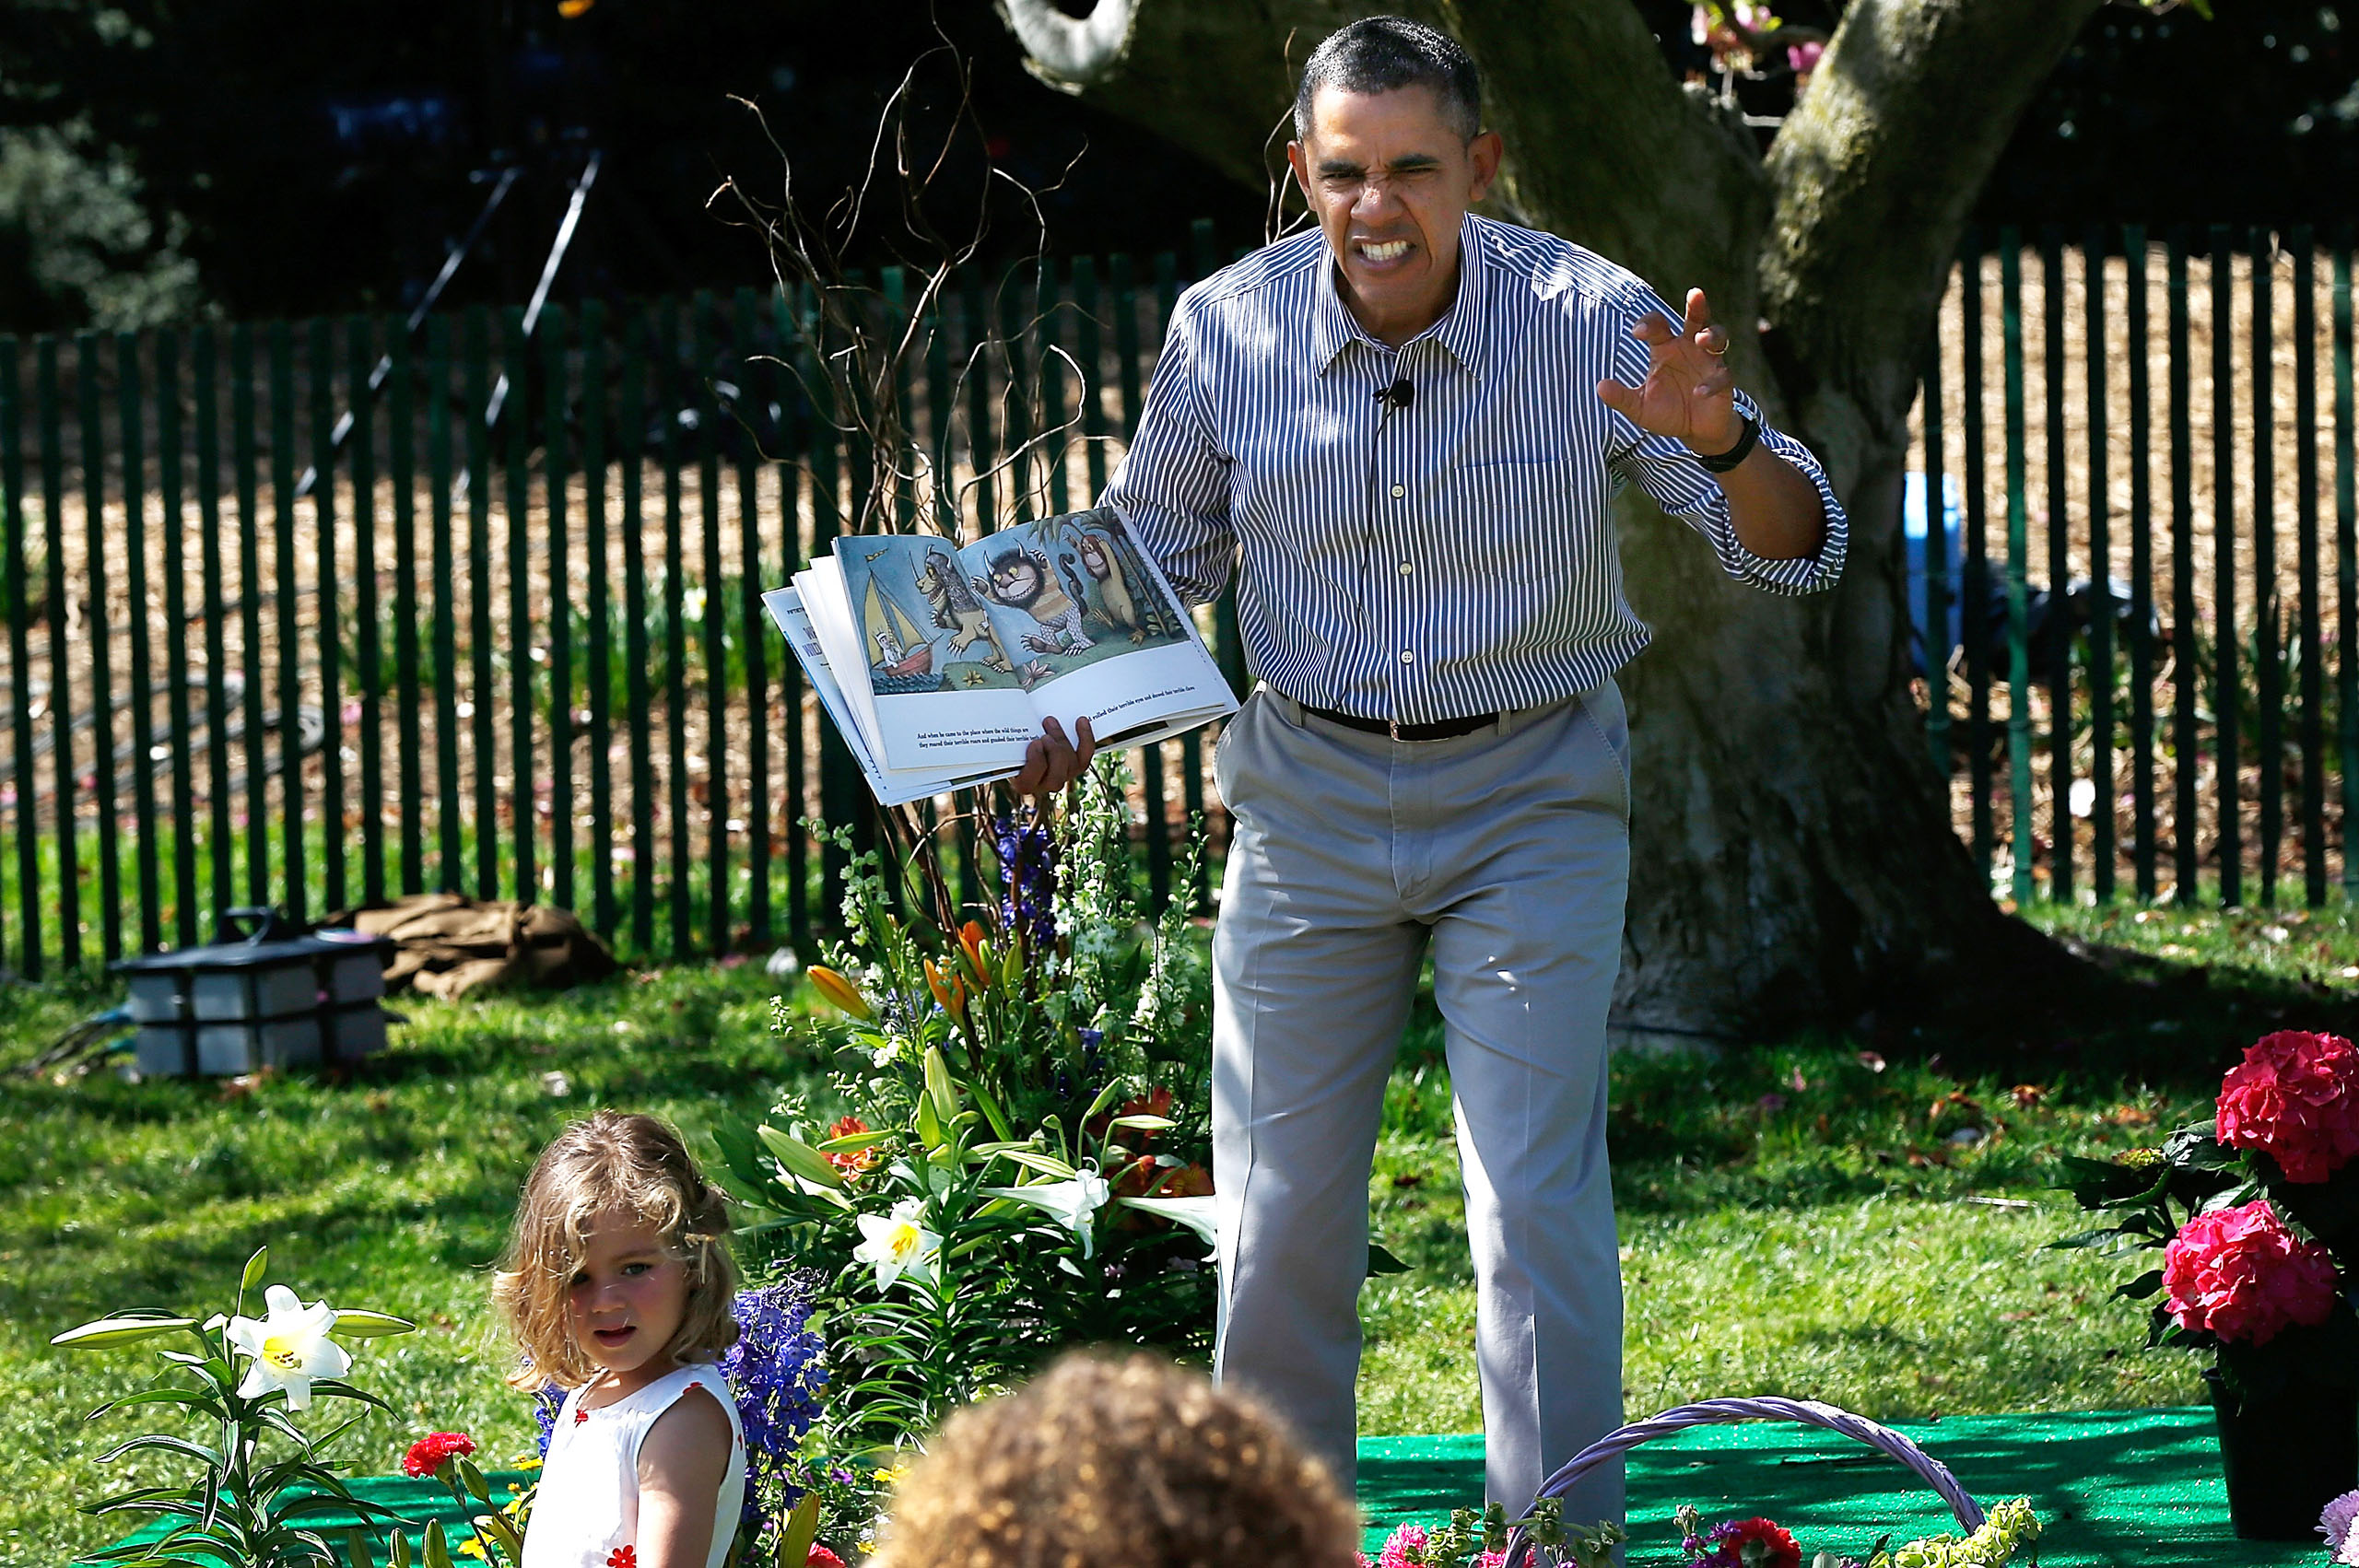 Obama read to children from the book  Where the Wild Things Are  during the annual White House Easter Egg Roll on the South Lawn in Washington, DC, on April 21, 2014.